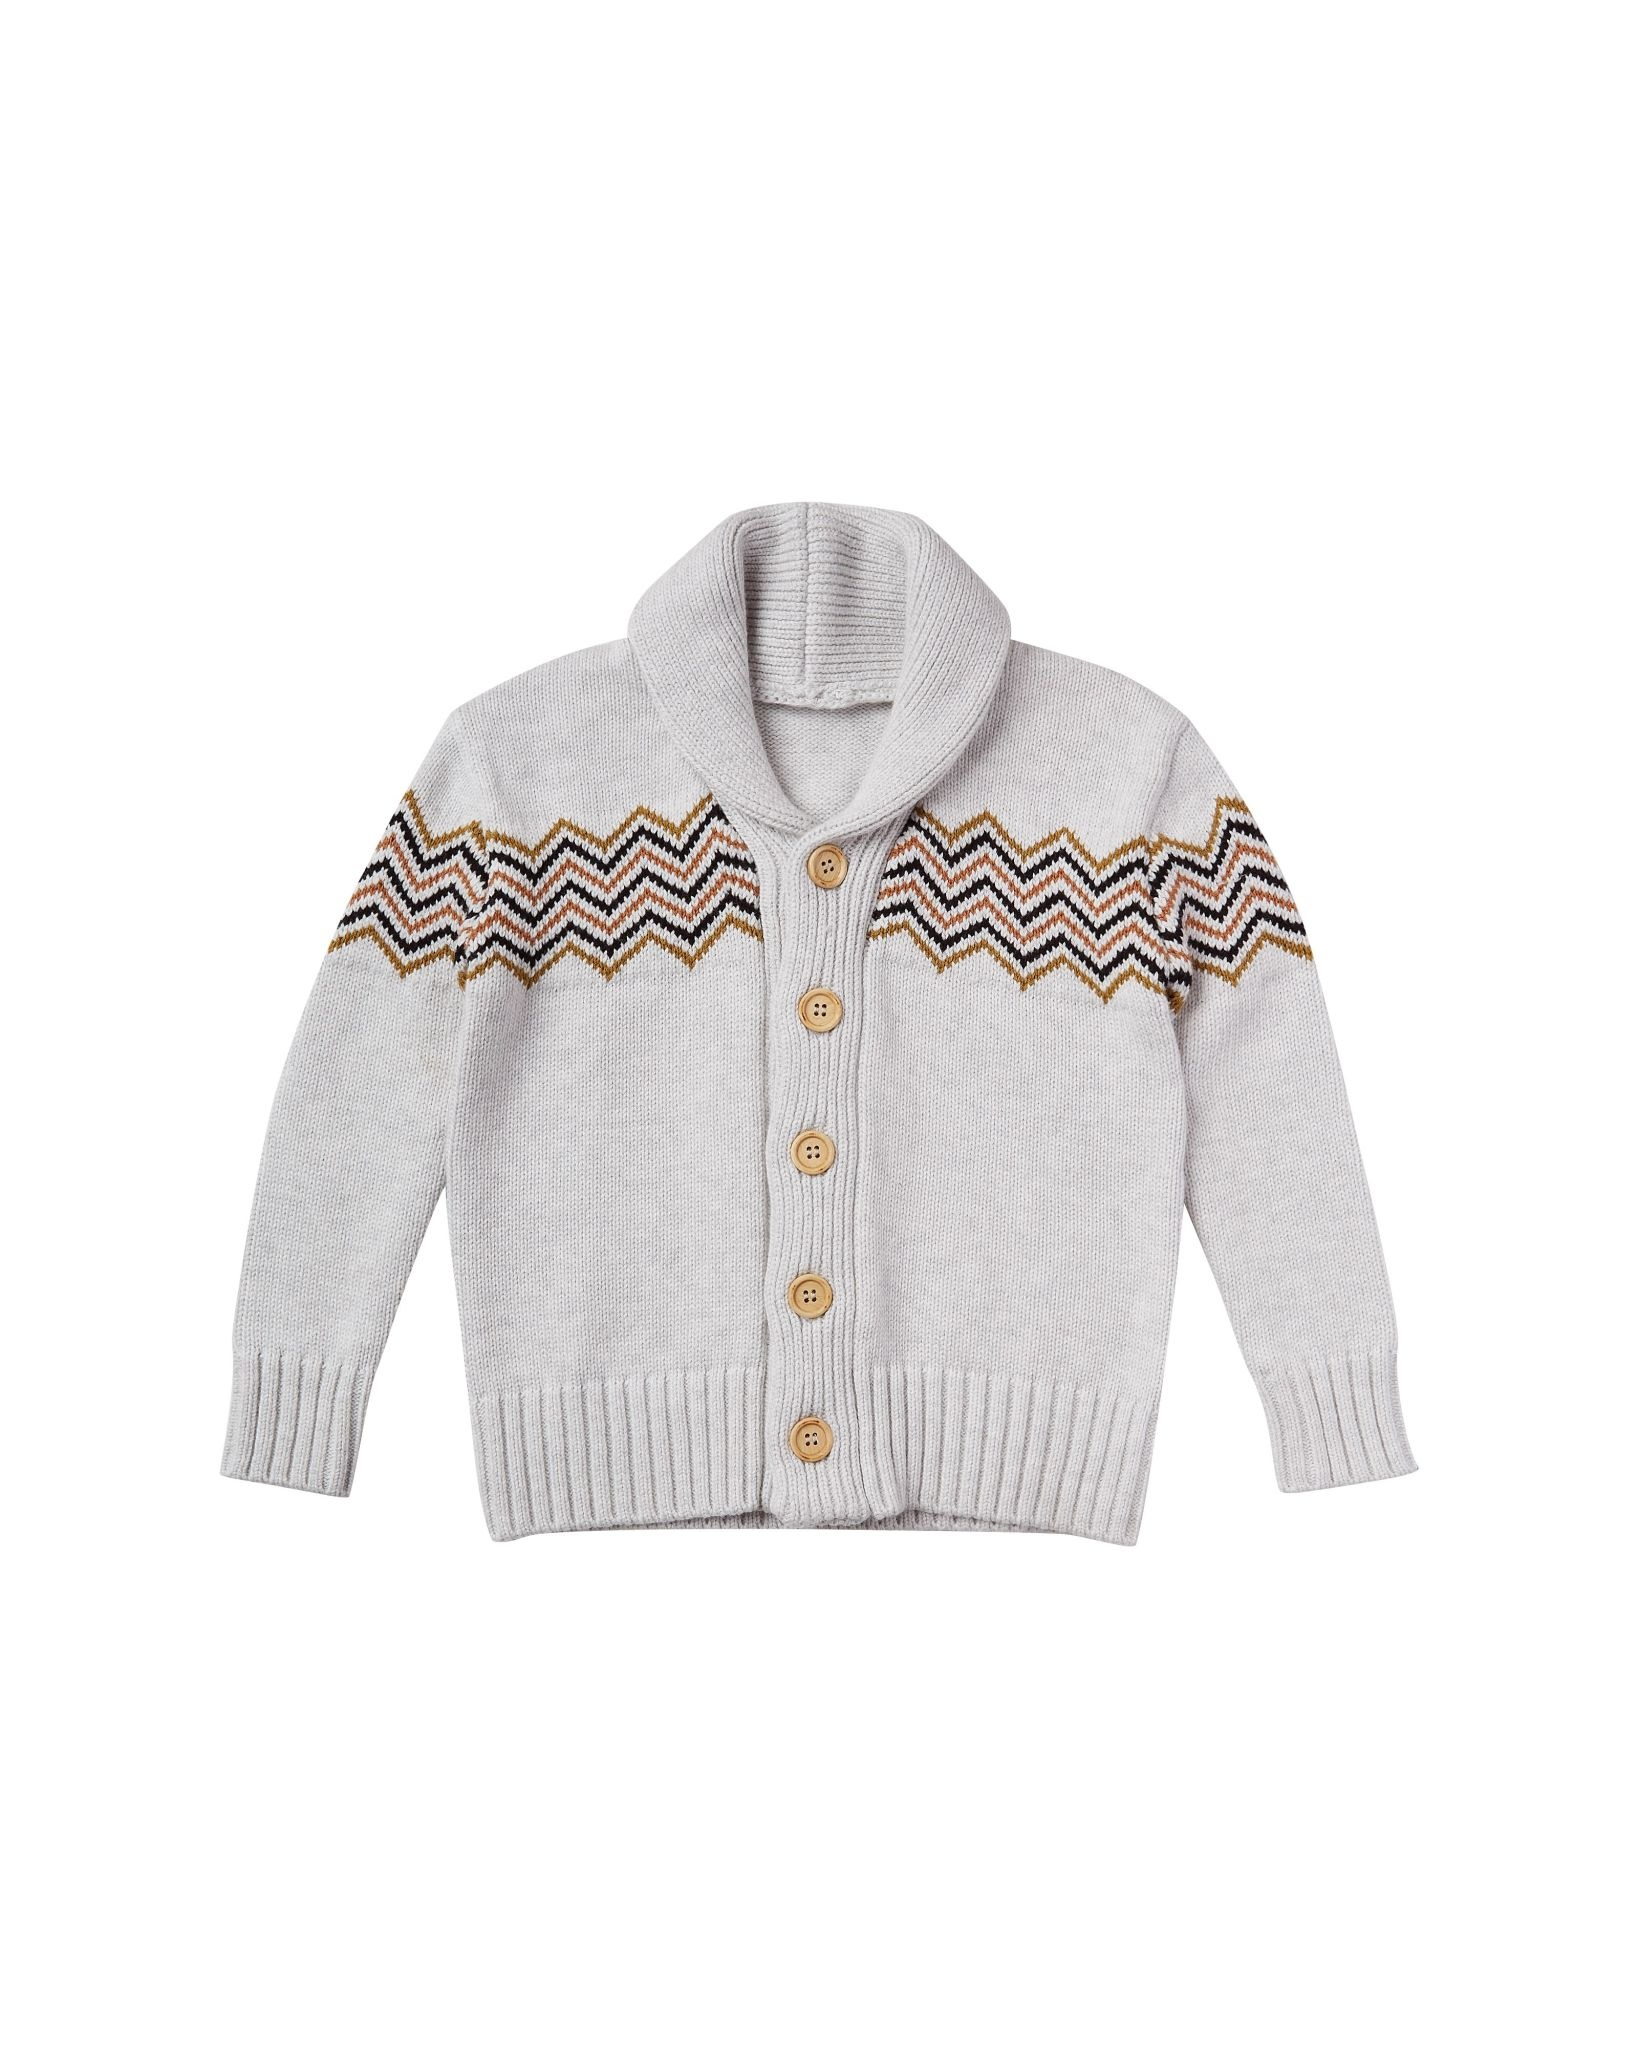 RYLEE AND CRU Shawl Knit Pullover